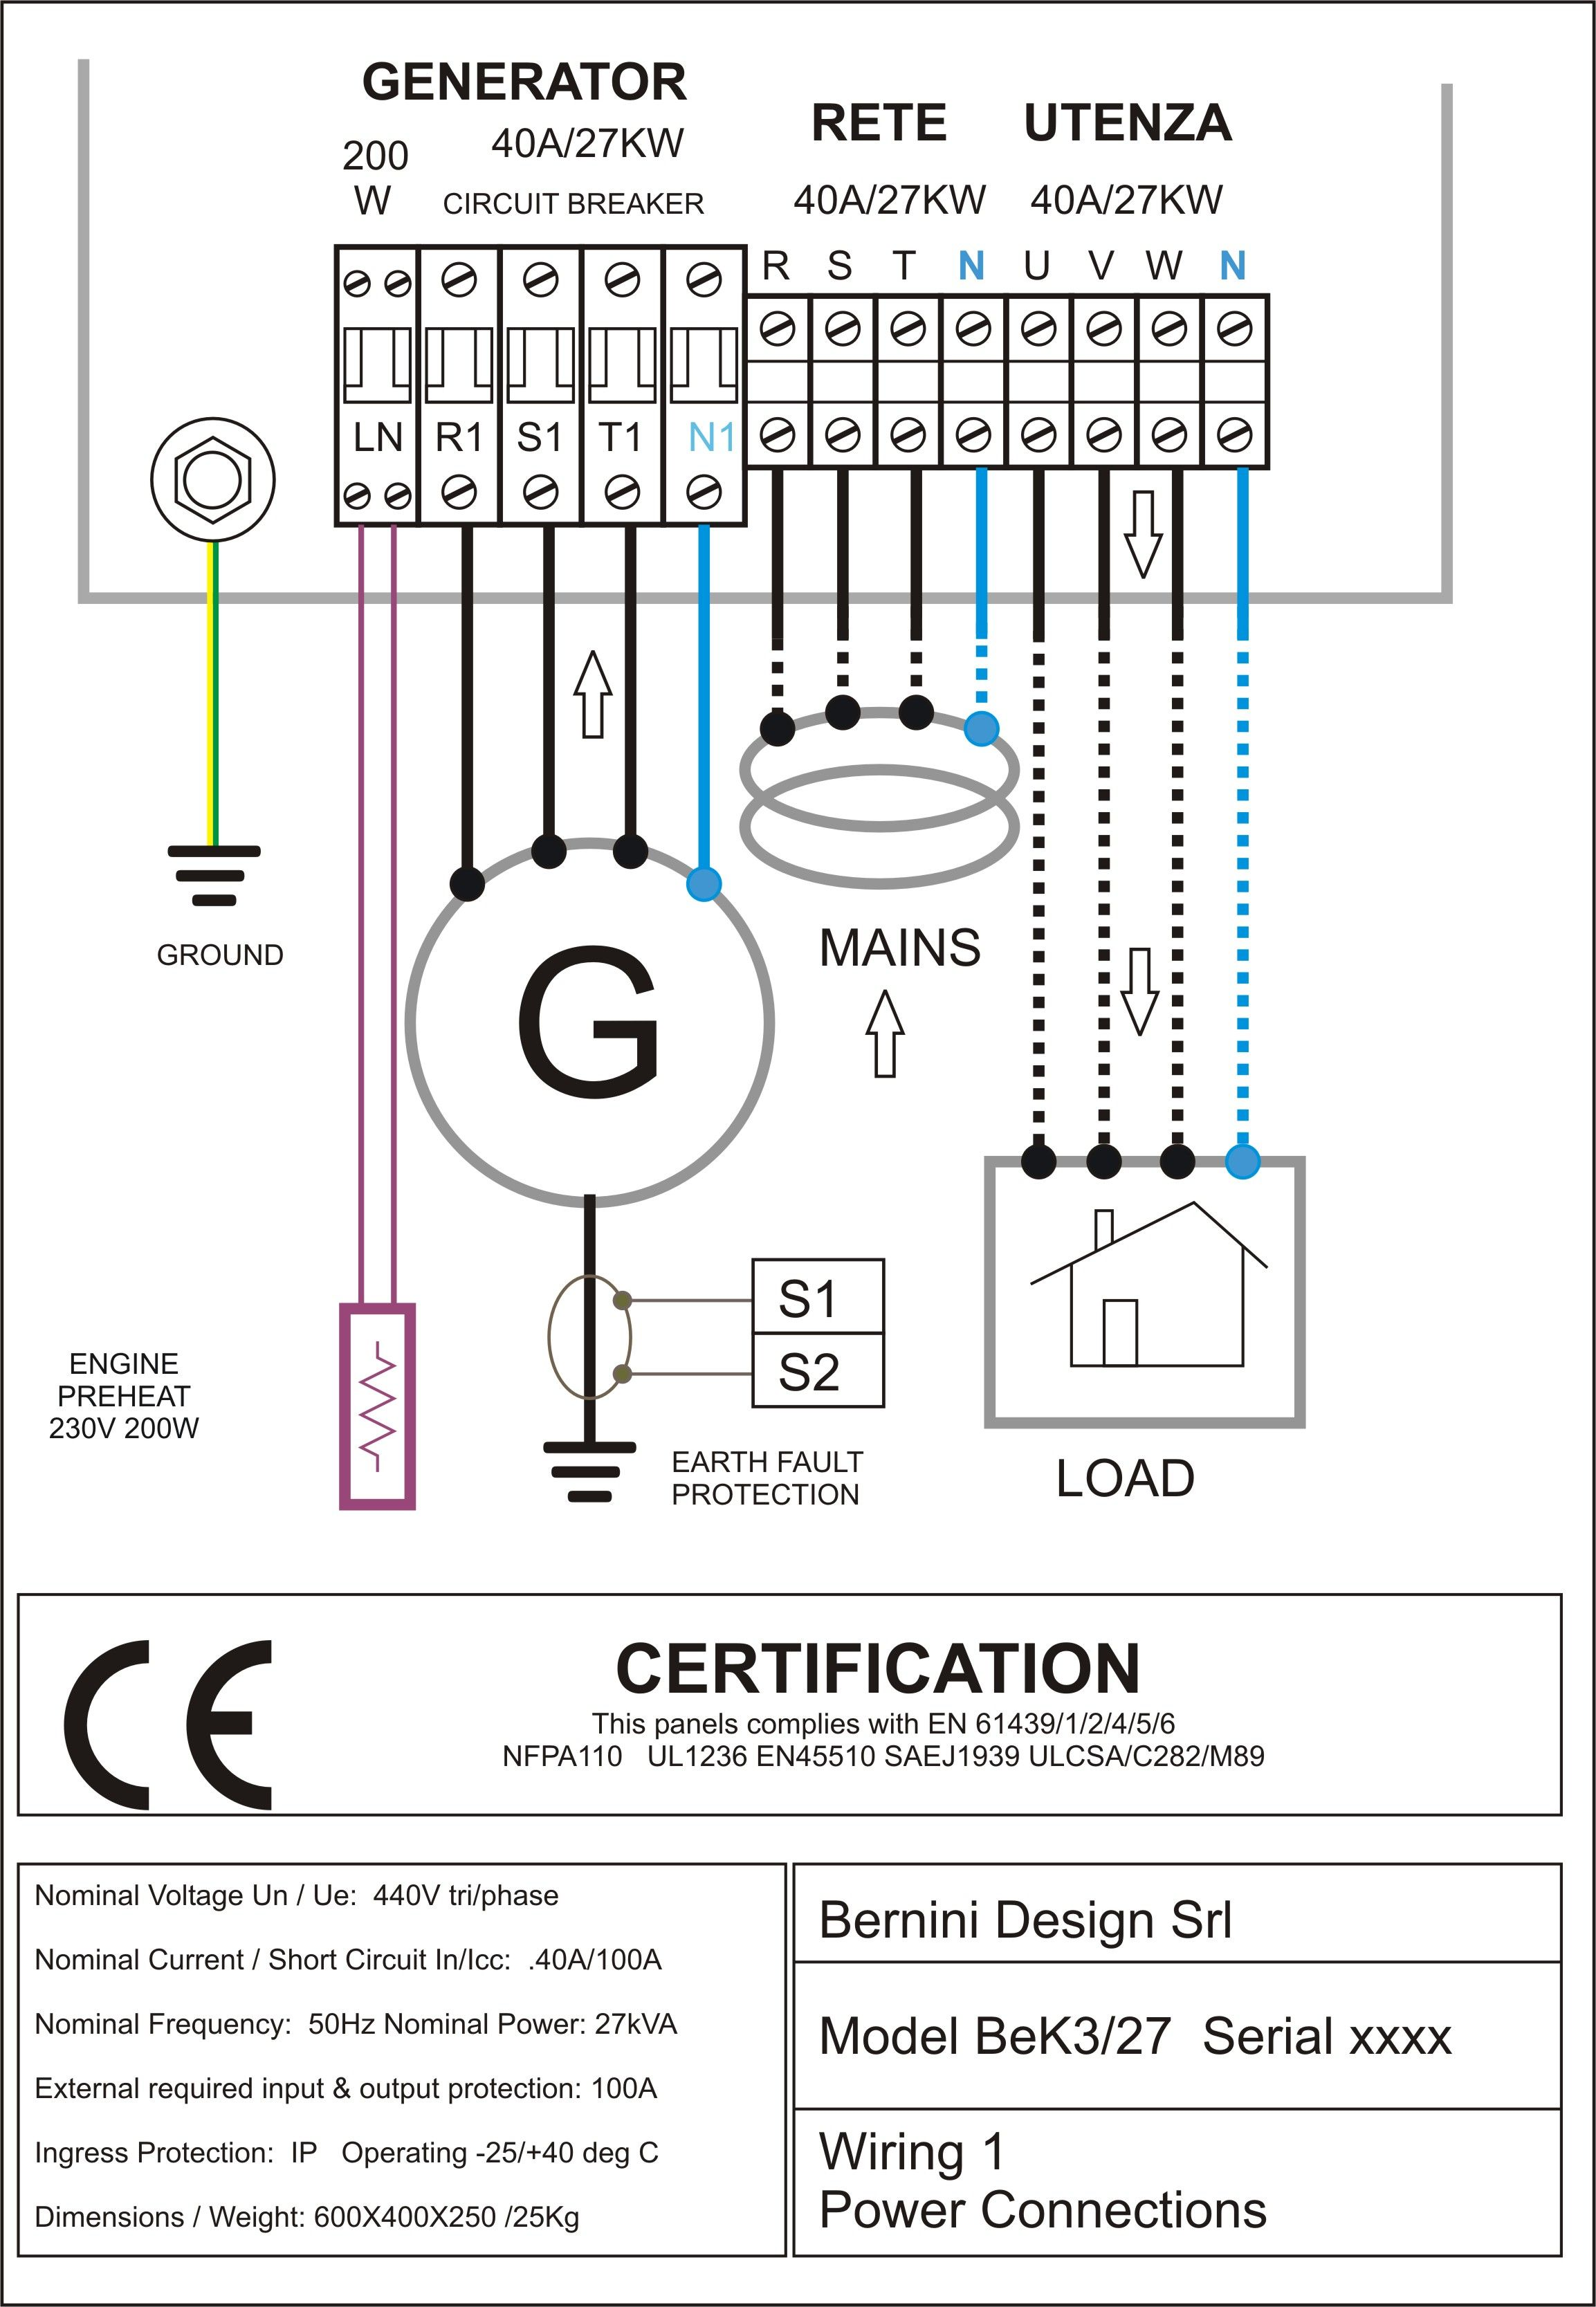 e789bca93f9142d48250ddc66668a81d diesel generator control panel wiring diagram gr pinterest controller wire diagram for 3246e2 lift at crackthecode.co